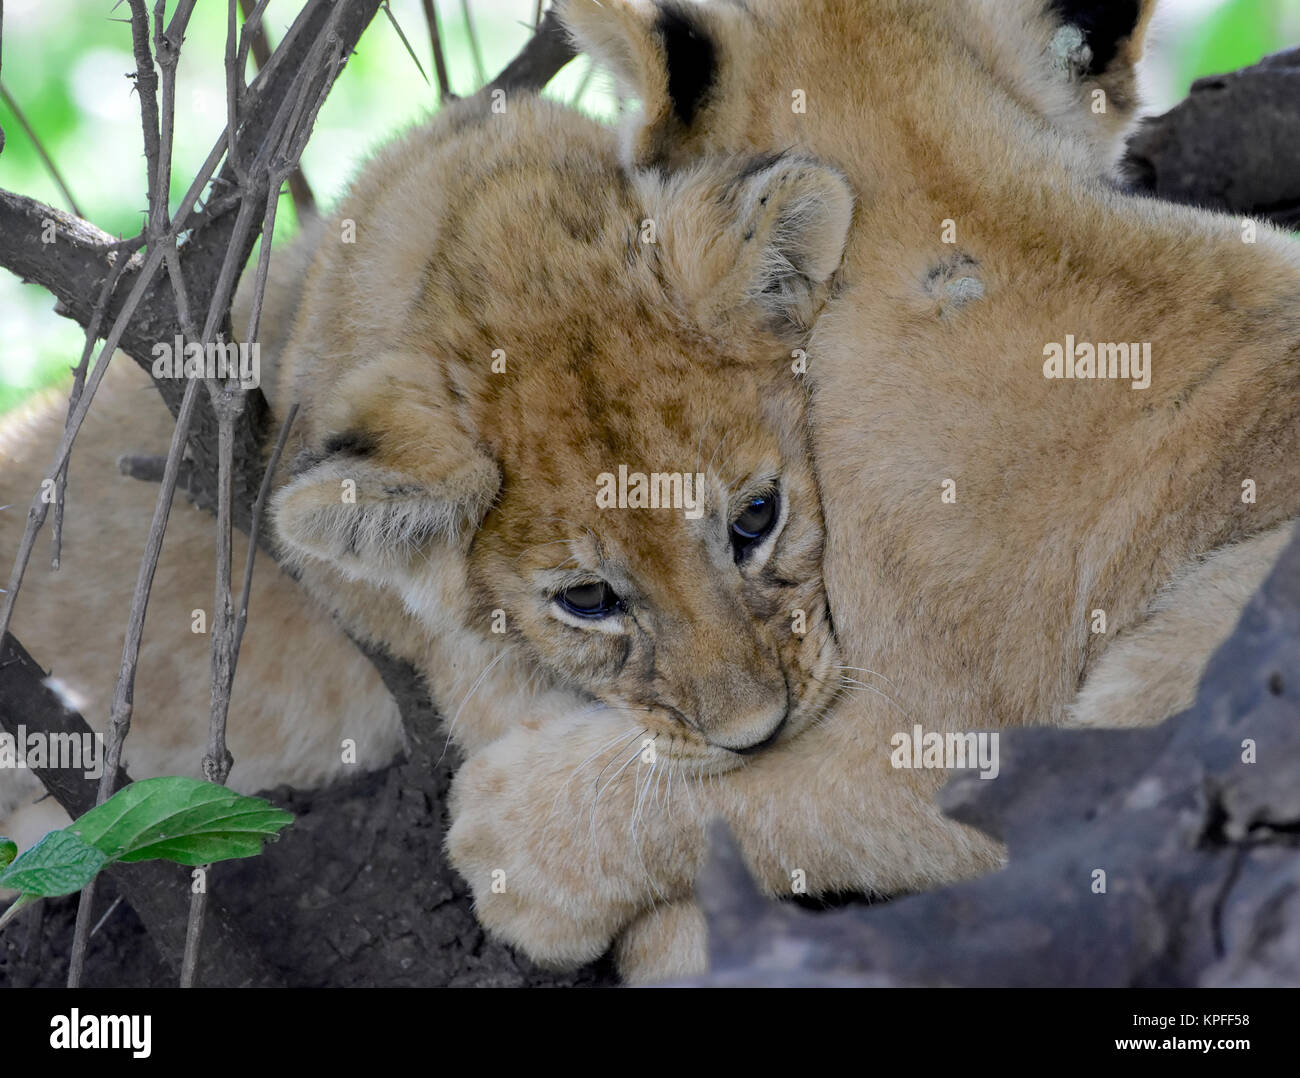 Wildlife sightseeing in one of the prime wildlife destinations on earht -- Serengeti, Tanzania. Cuddling lion cubs. - Stock Image